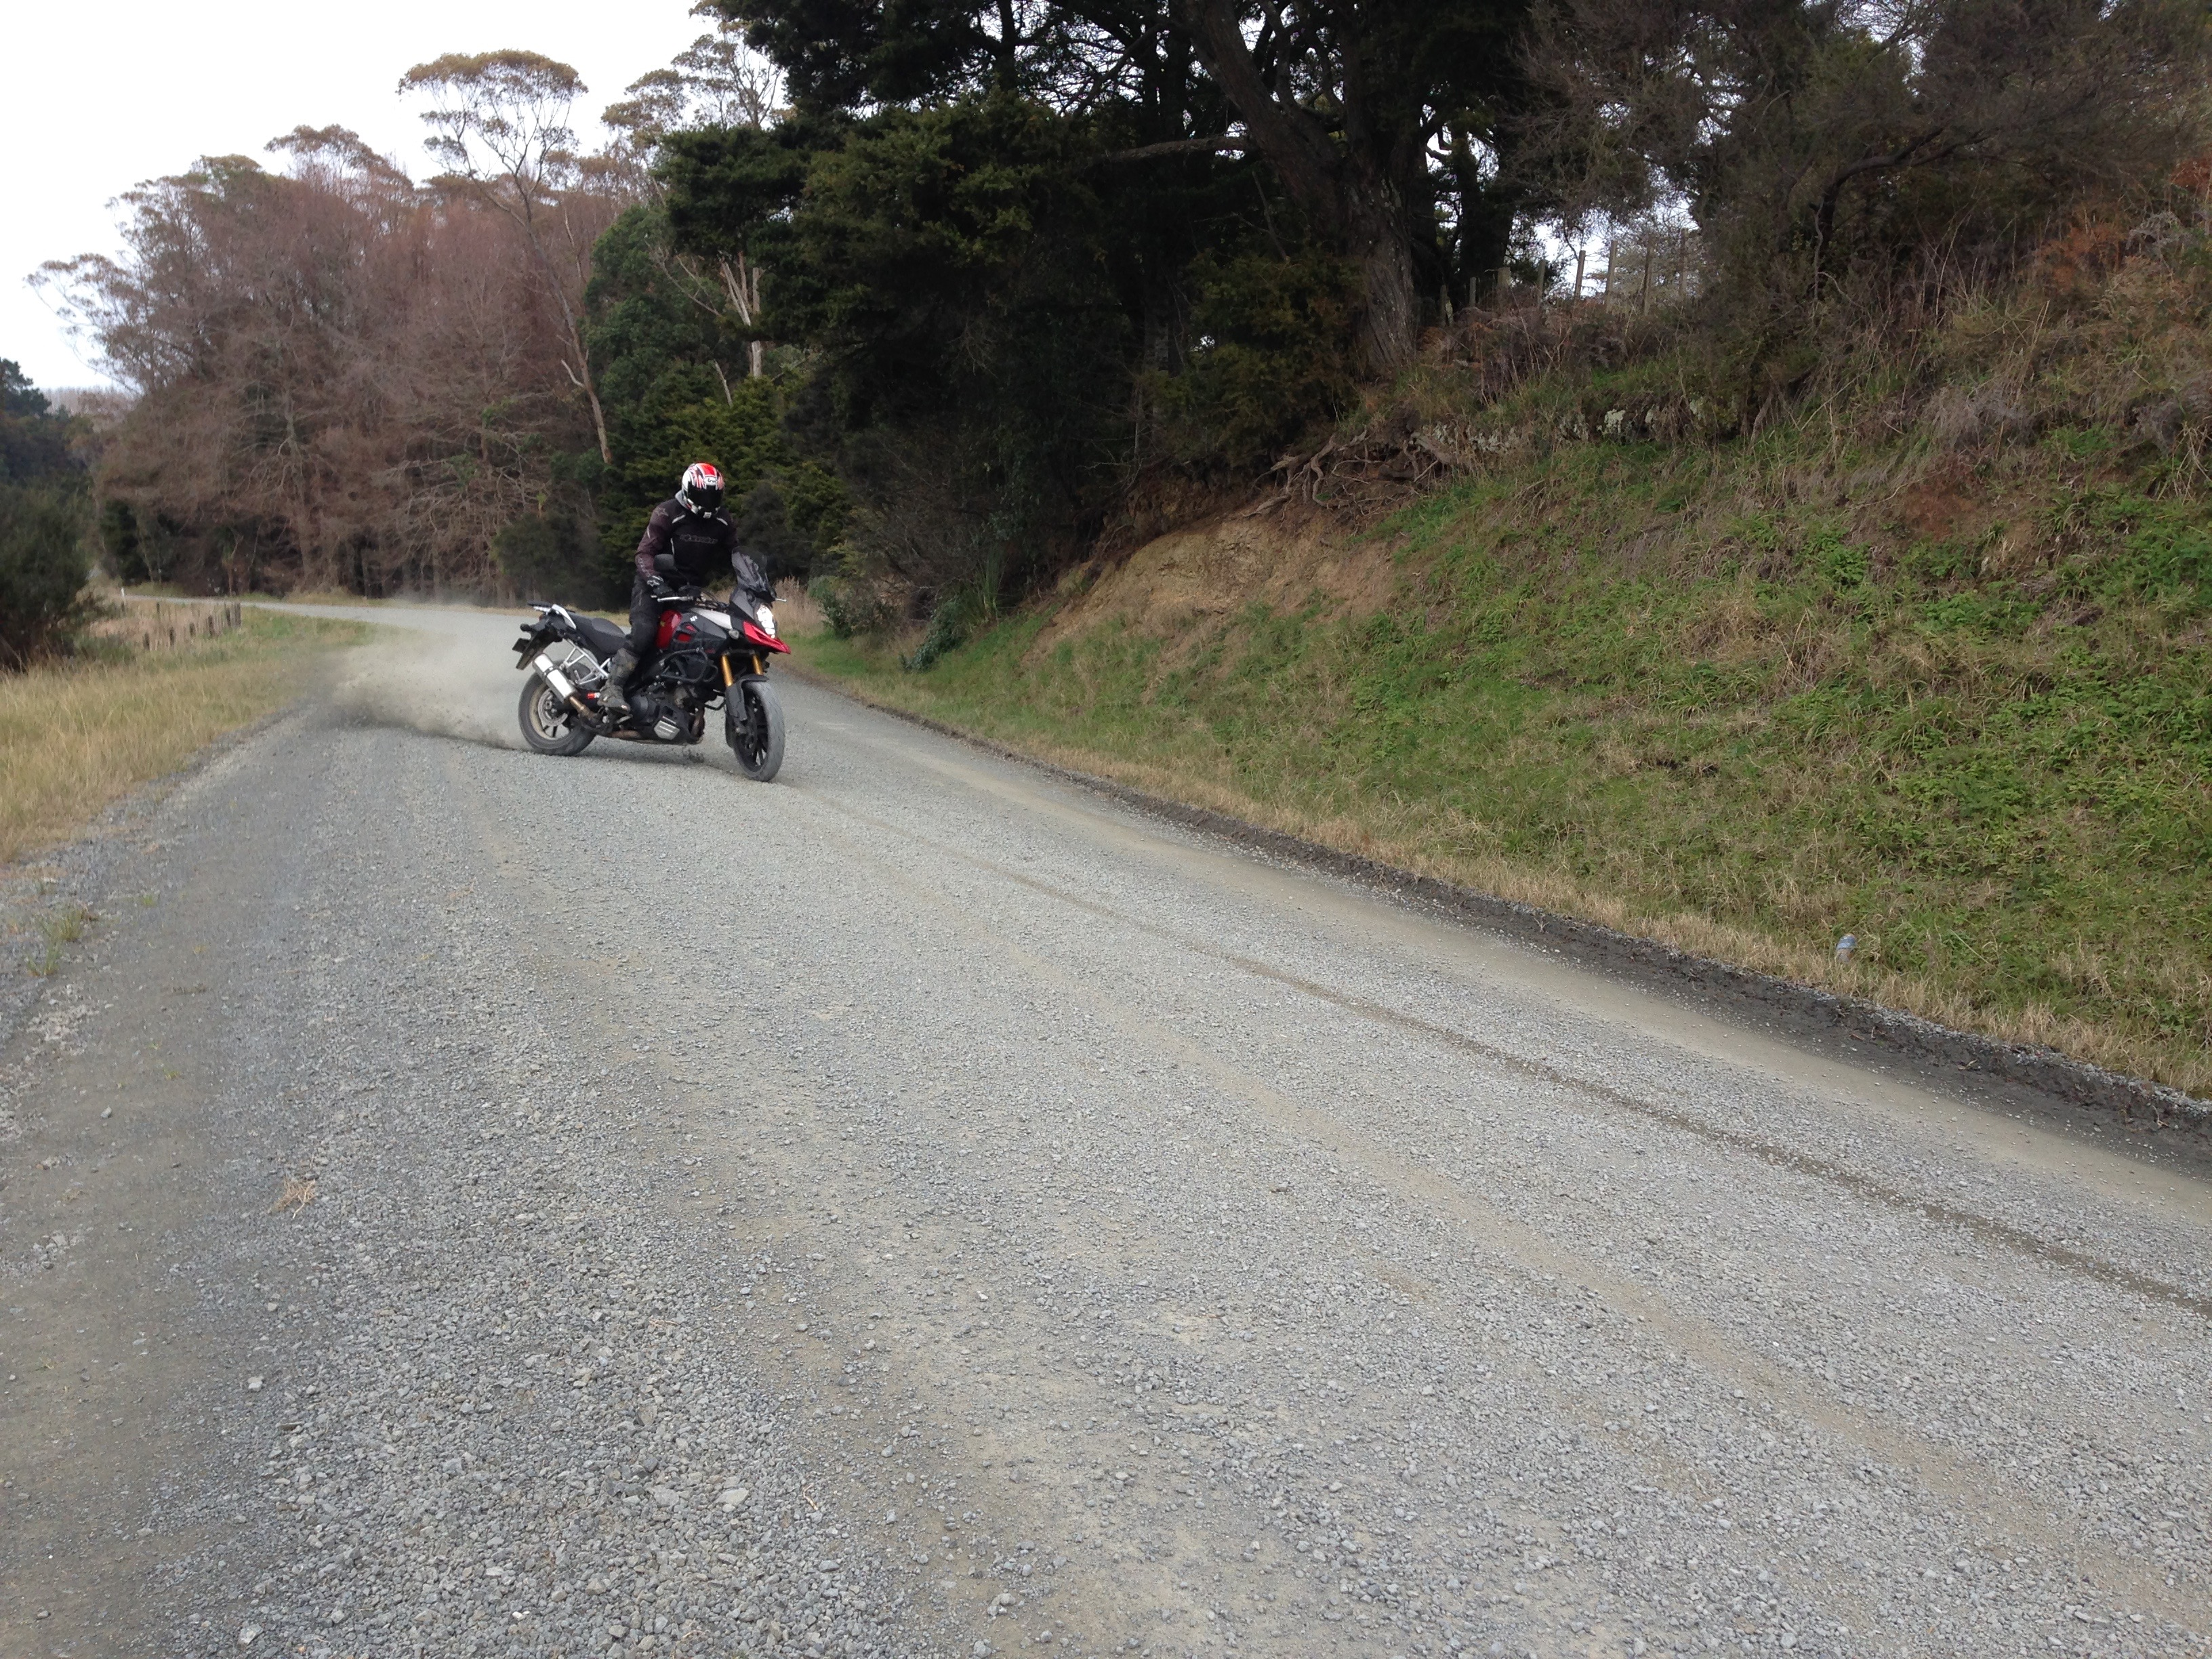 Gravel riding on our private road